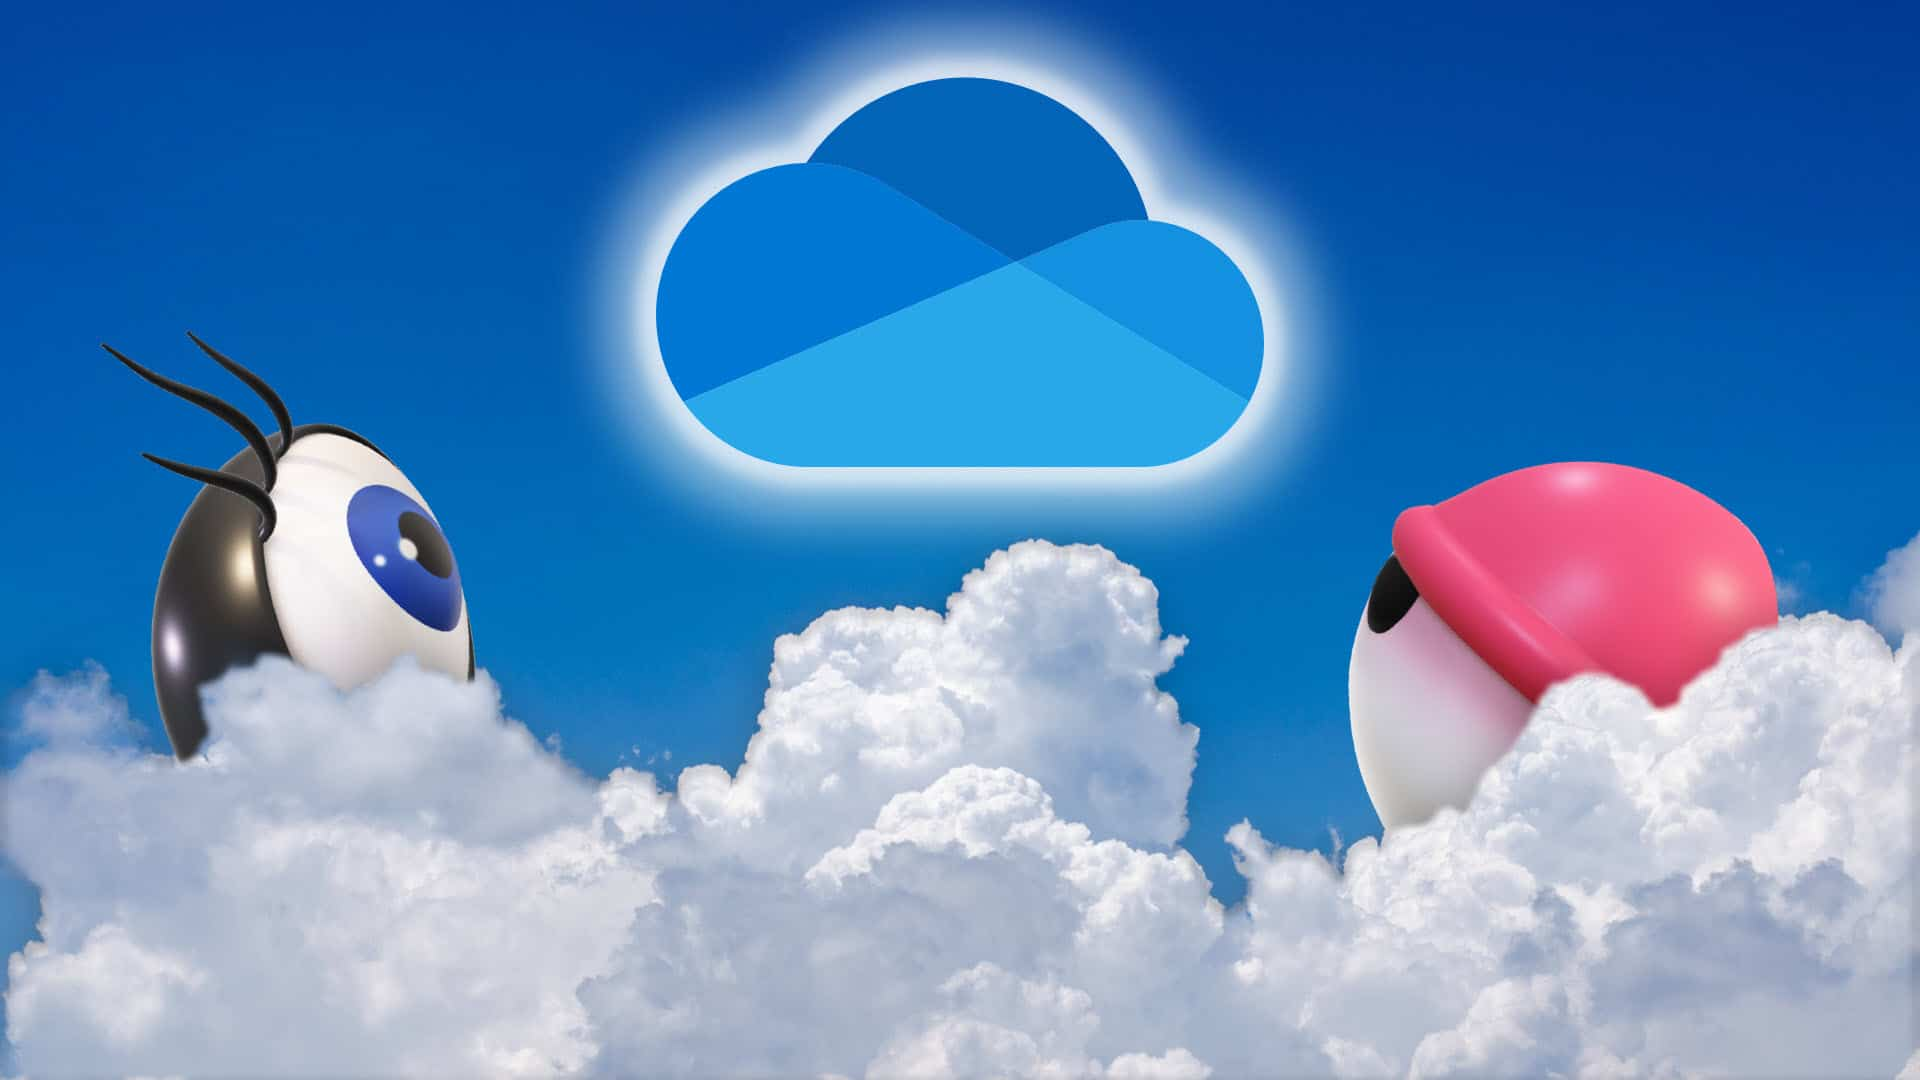 OneDrive who can see - showing OneDrive logo and two eyes peering from clouds